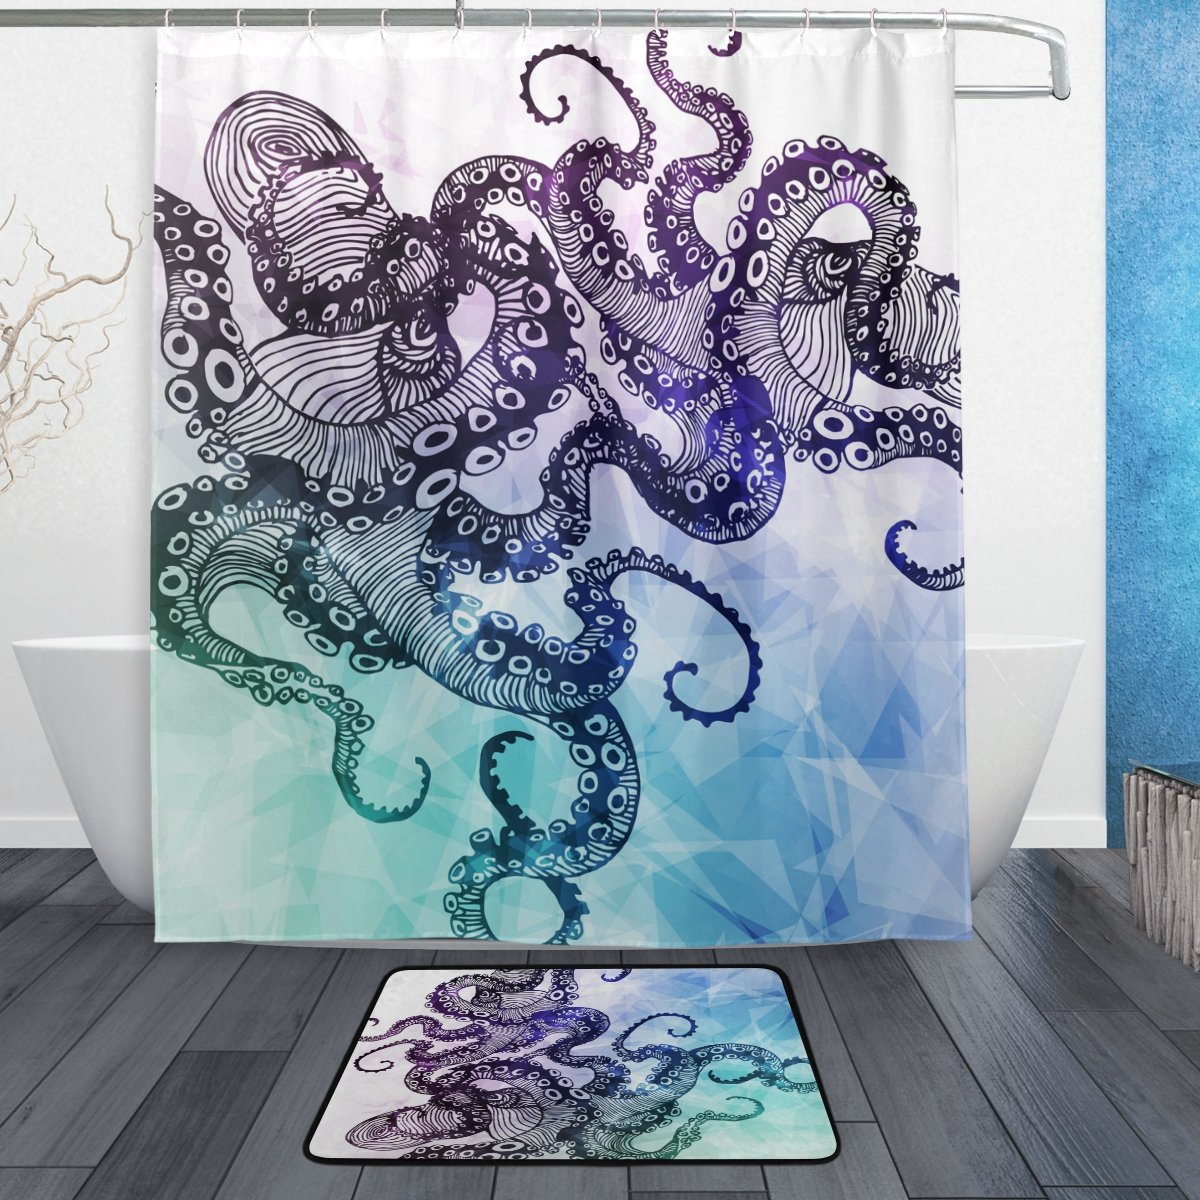 ALAZA Set of 2 Octopus Sea Monster 60 X 72 Inches Shower Curtain and Mat Set, Ocean Sea Animal Geometric Style Waterproof Fabric Bathroom Curtain and Rug Set with Hooks